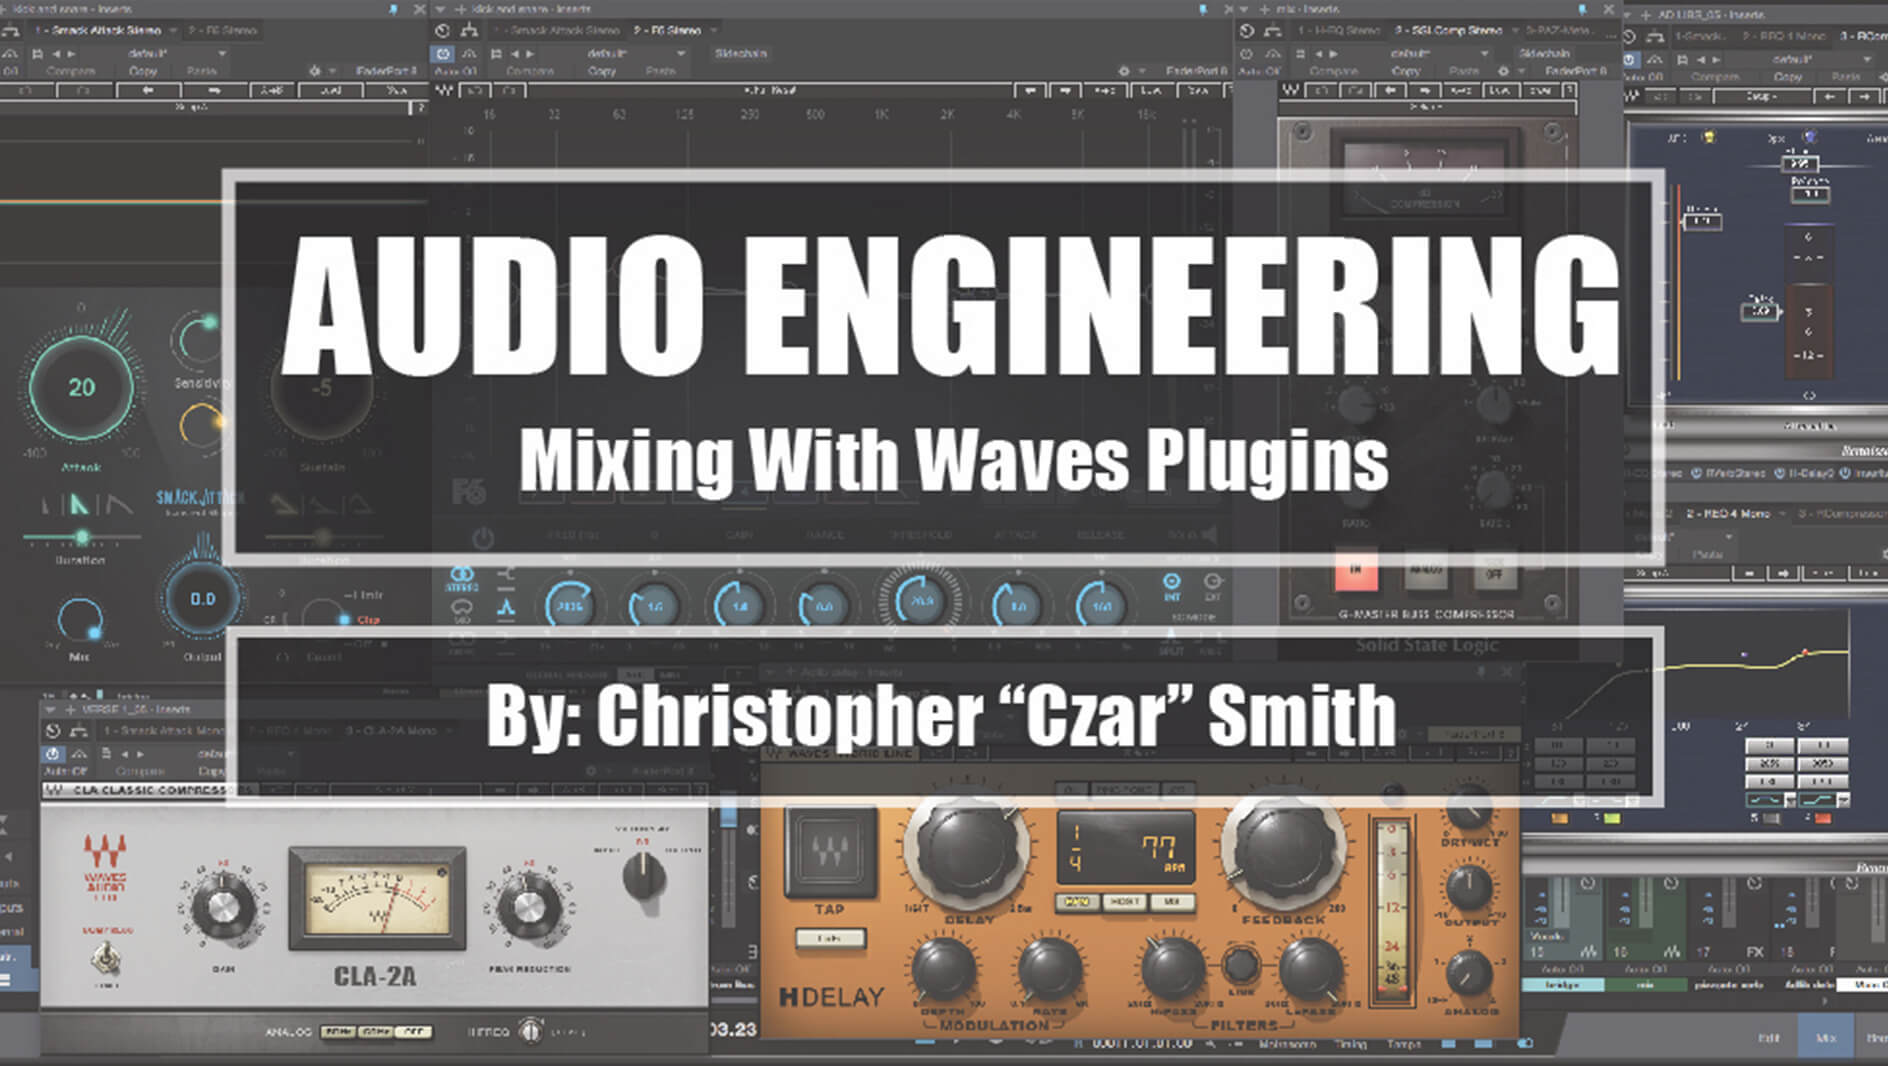 Audio Engineering: Mixing with Waves Plugins